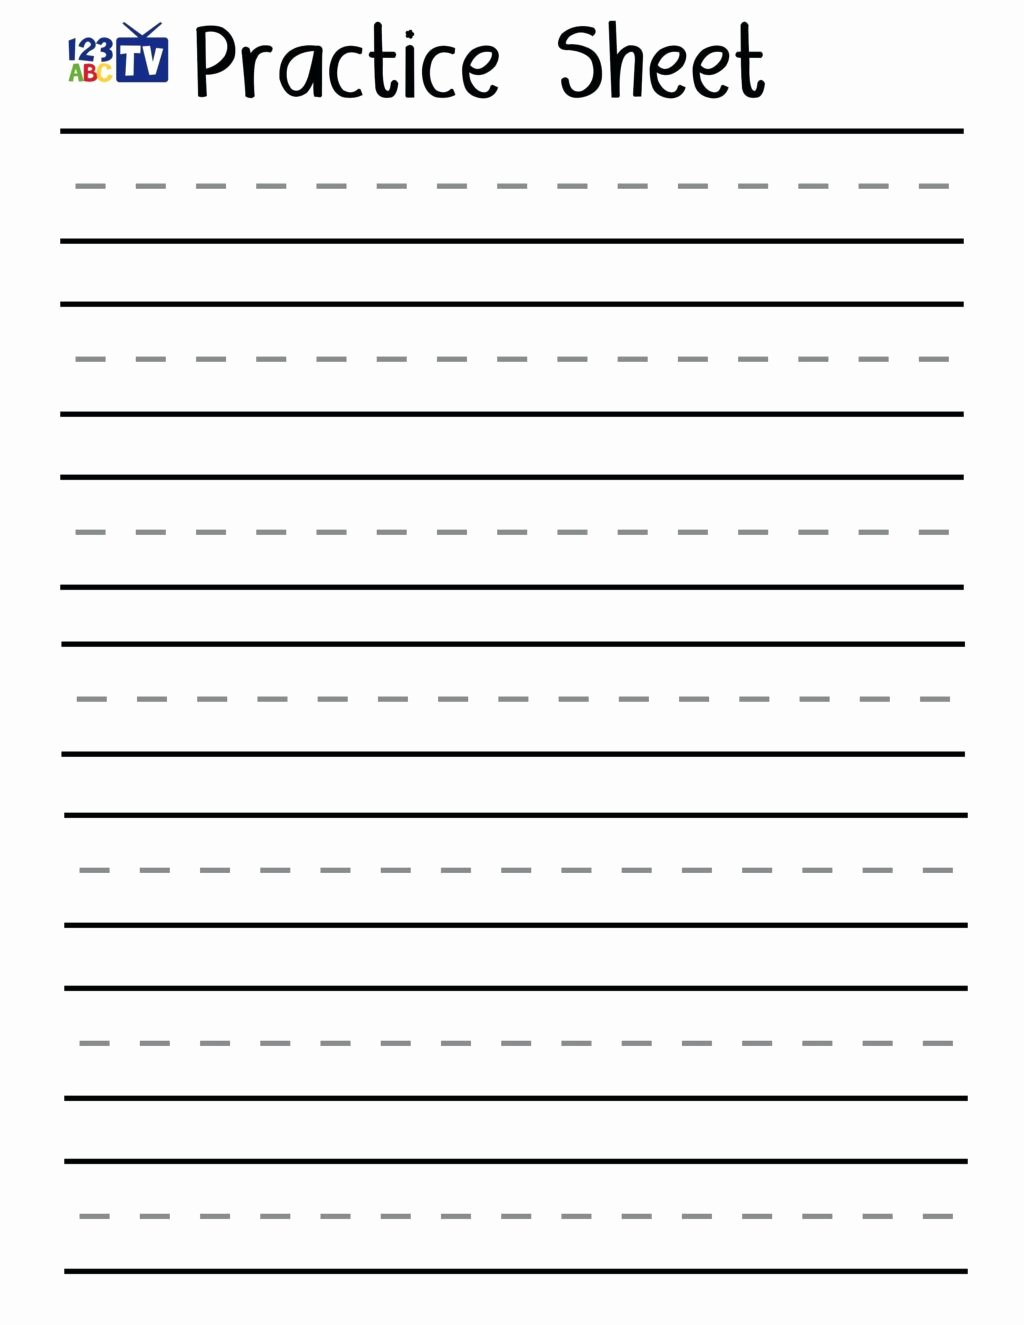 Practice Writing Worksheets for Preschoolers Free Worksheet Handwriting Sheets Maker Barka Free Printable